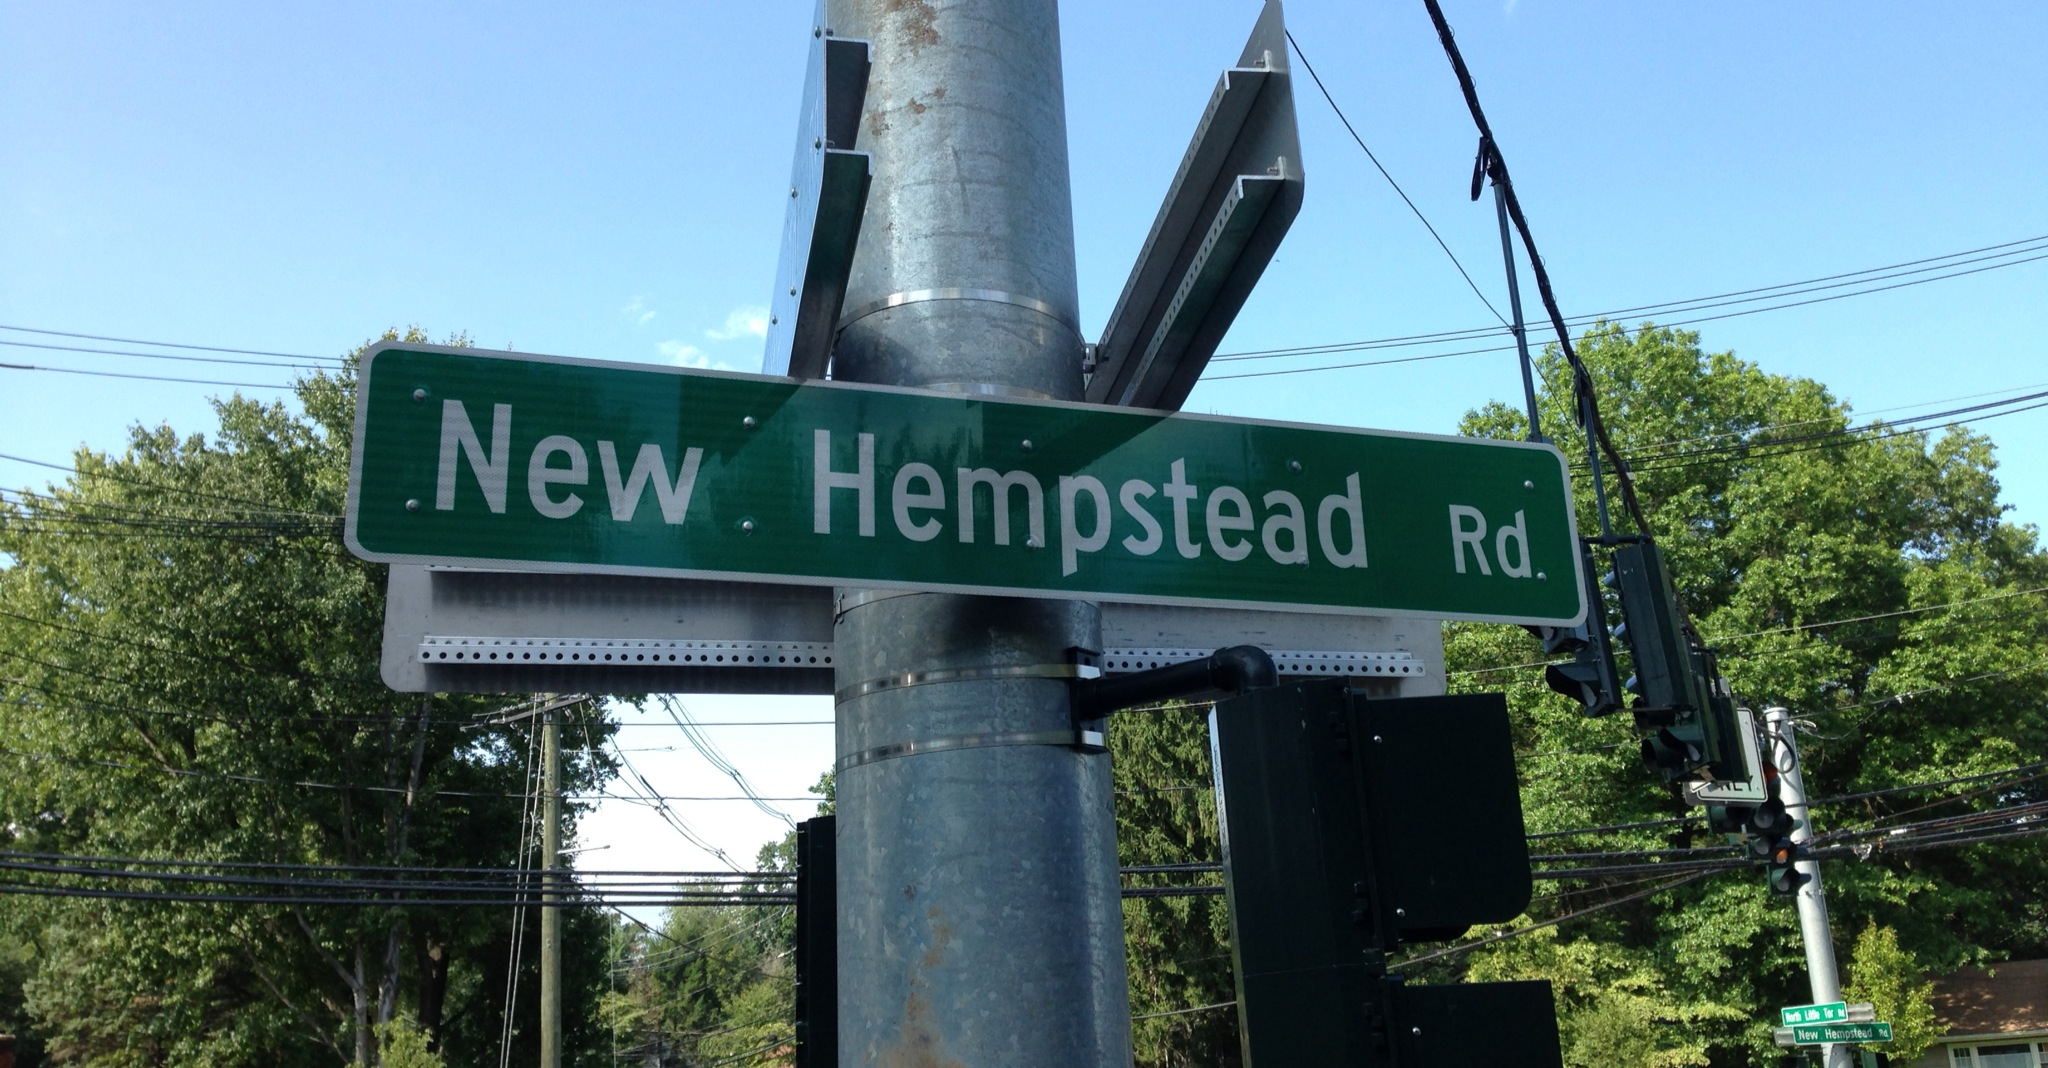 New Hempstead Road